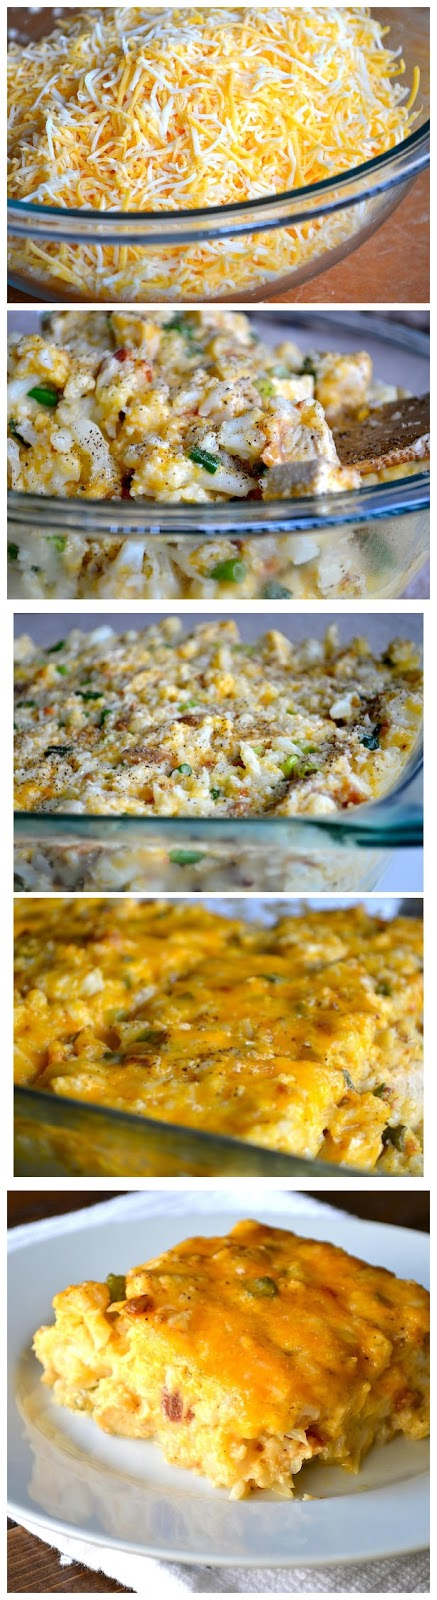 Loaded Cauliflower & Chicken-Casserole-Recipe